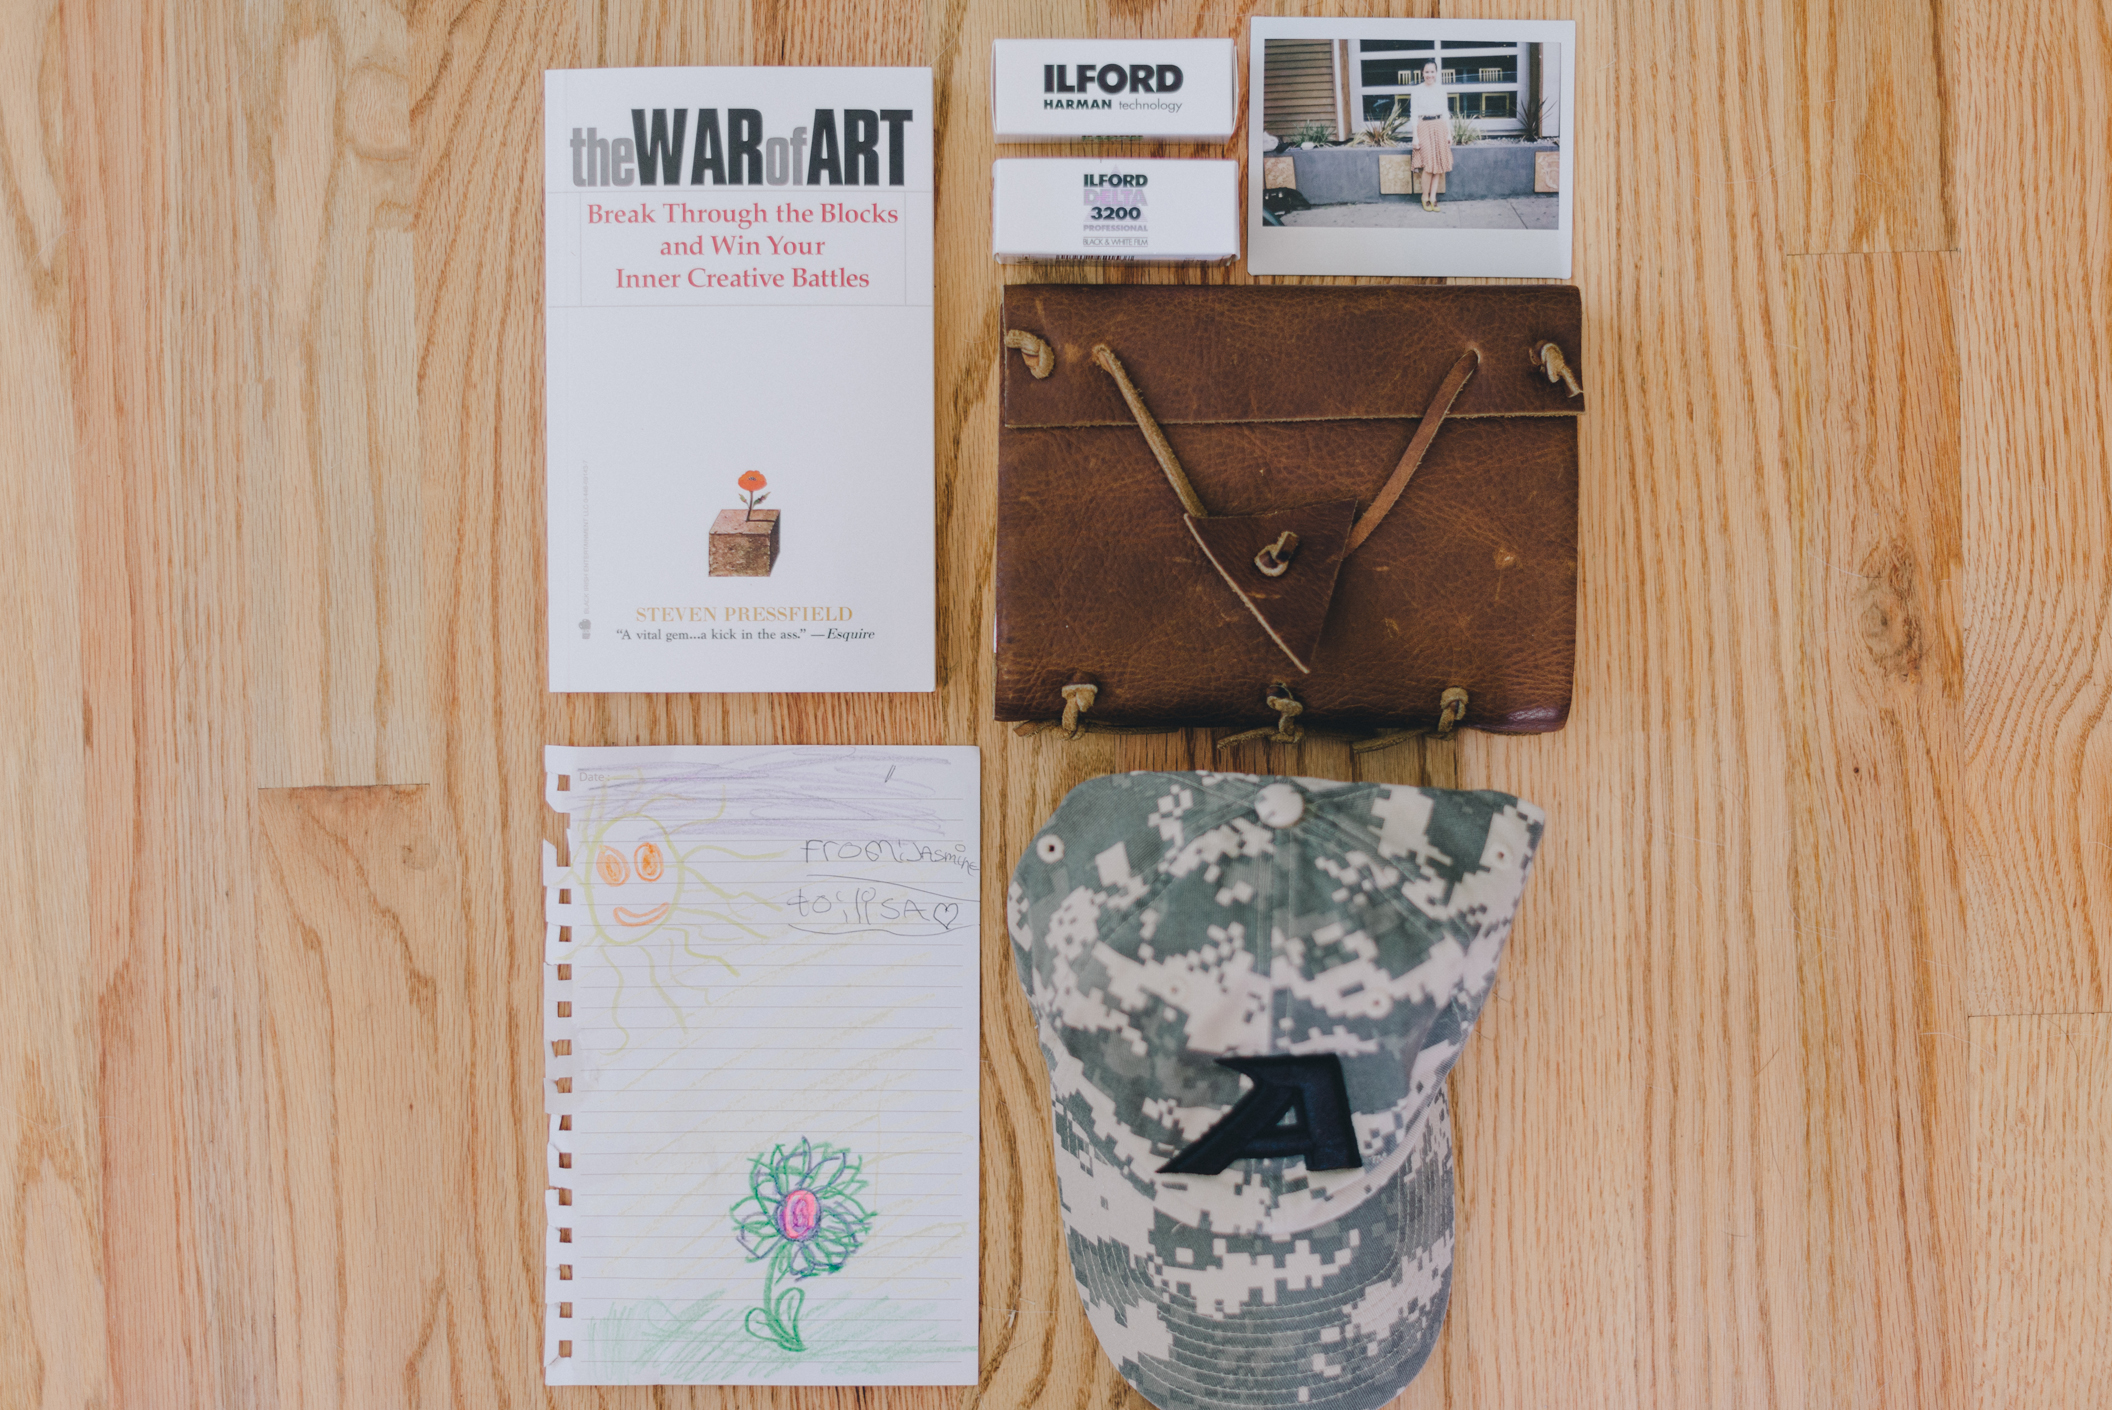 This week's favorites: The War of Art - book highly recommended by Ryan. Film. Journal filled with new artists to learn about. A drawing from Dana Napoleon's daughter (Dana also attended Musea). And Anthony's cap as he's been away for work.